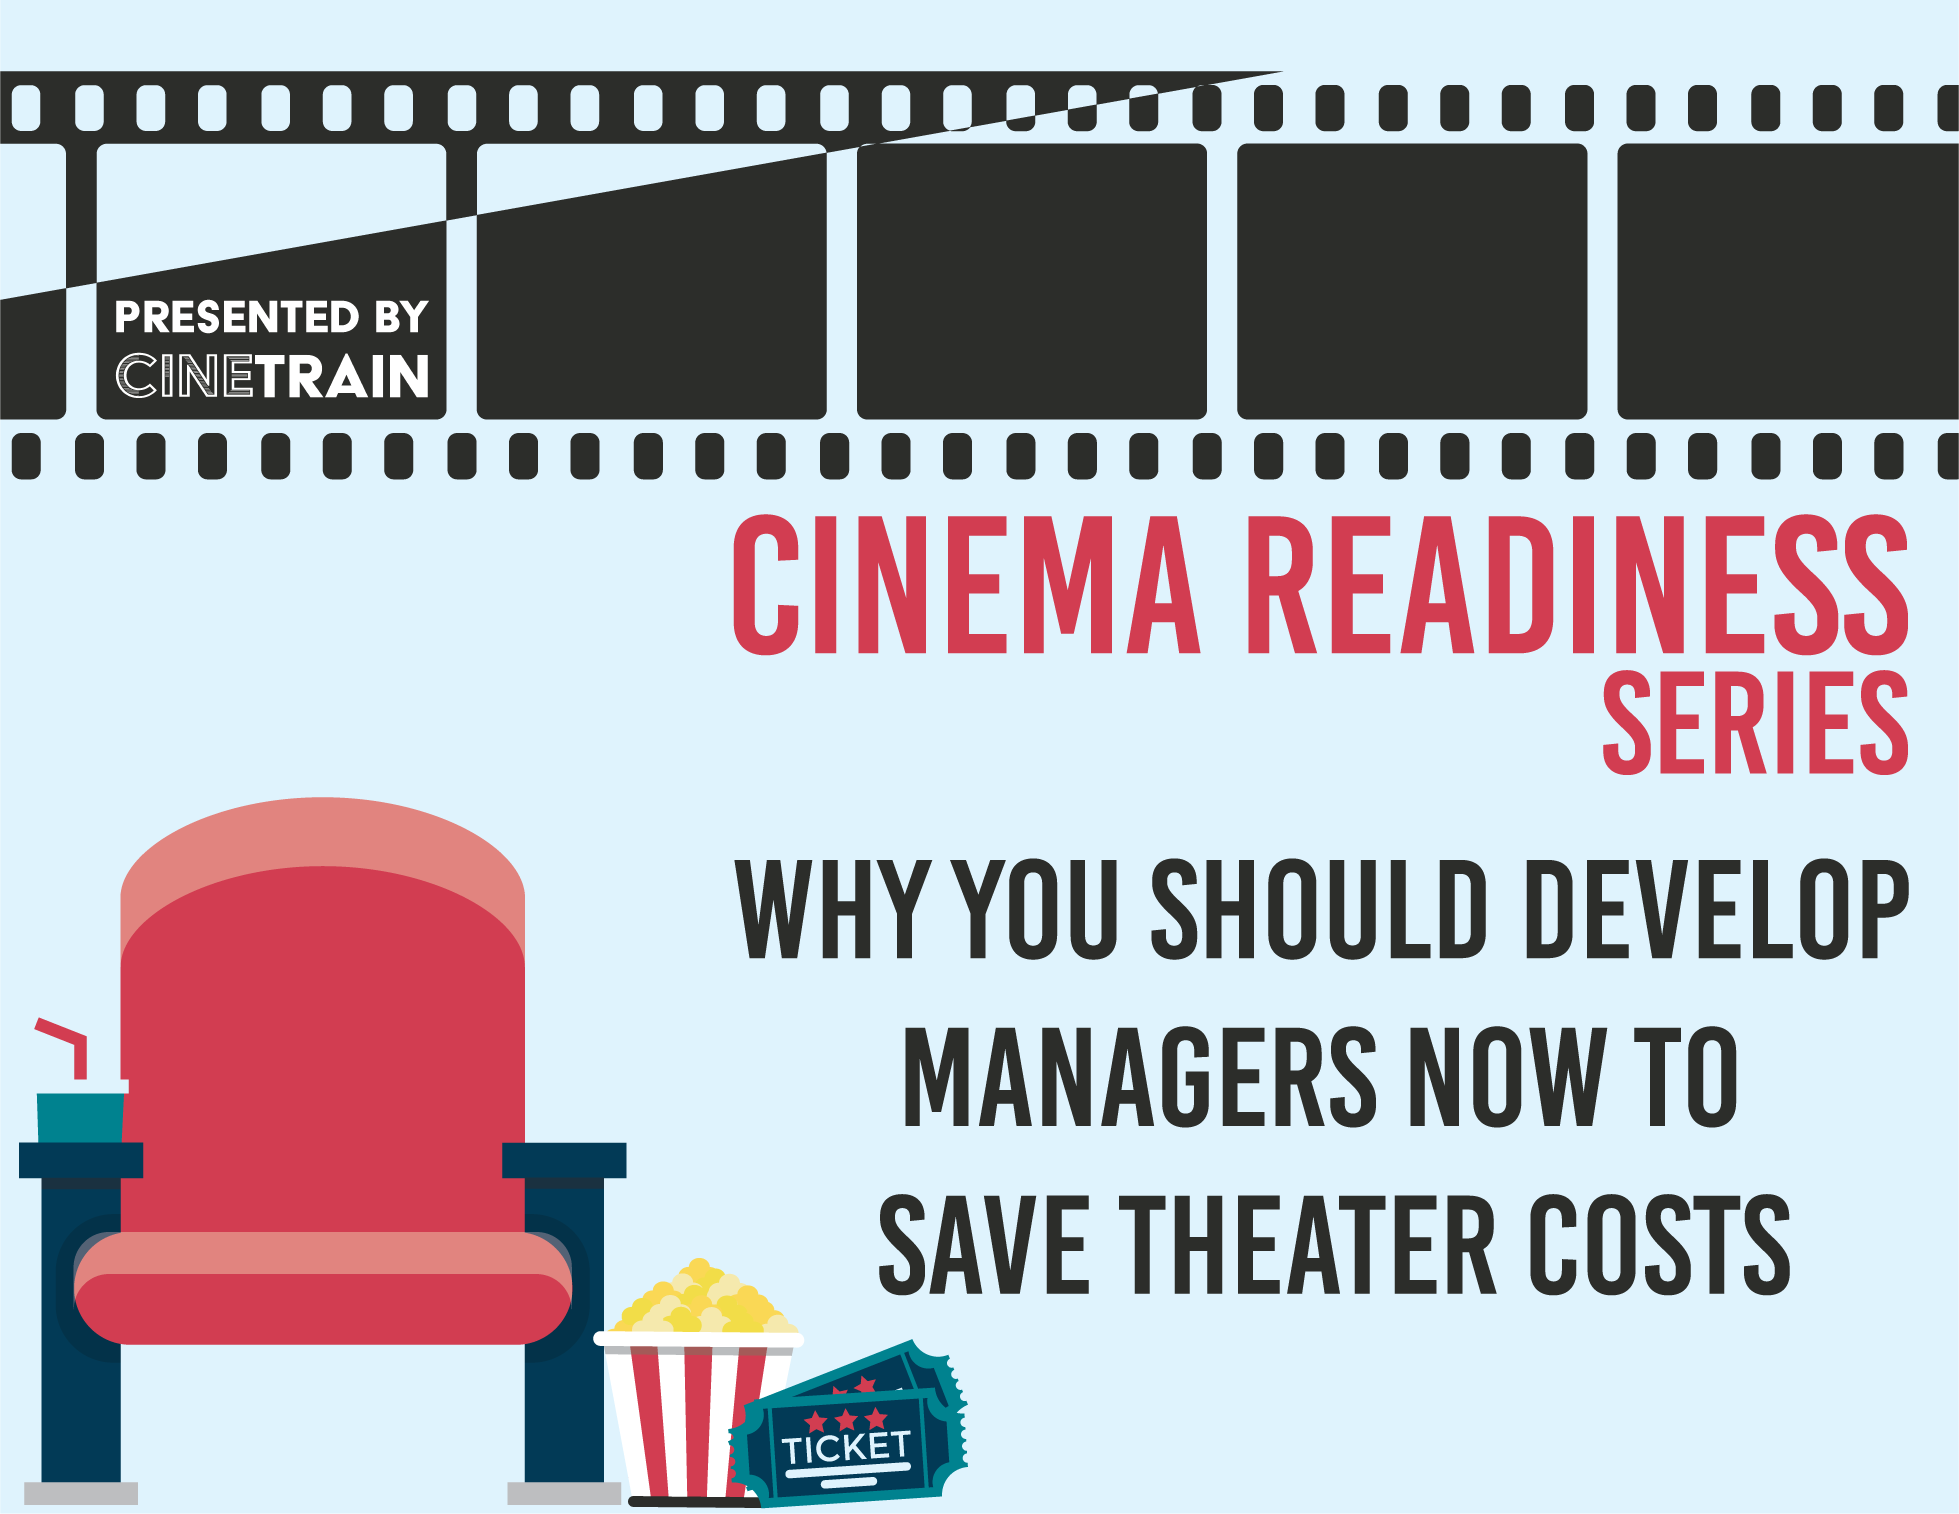 Why You Should Develop Managers Now to Save Theater Costs